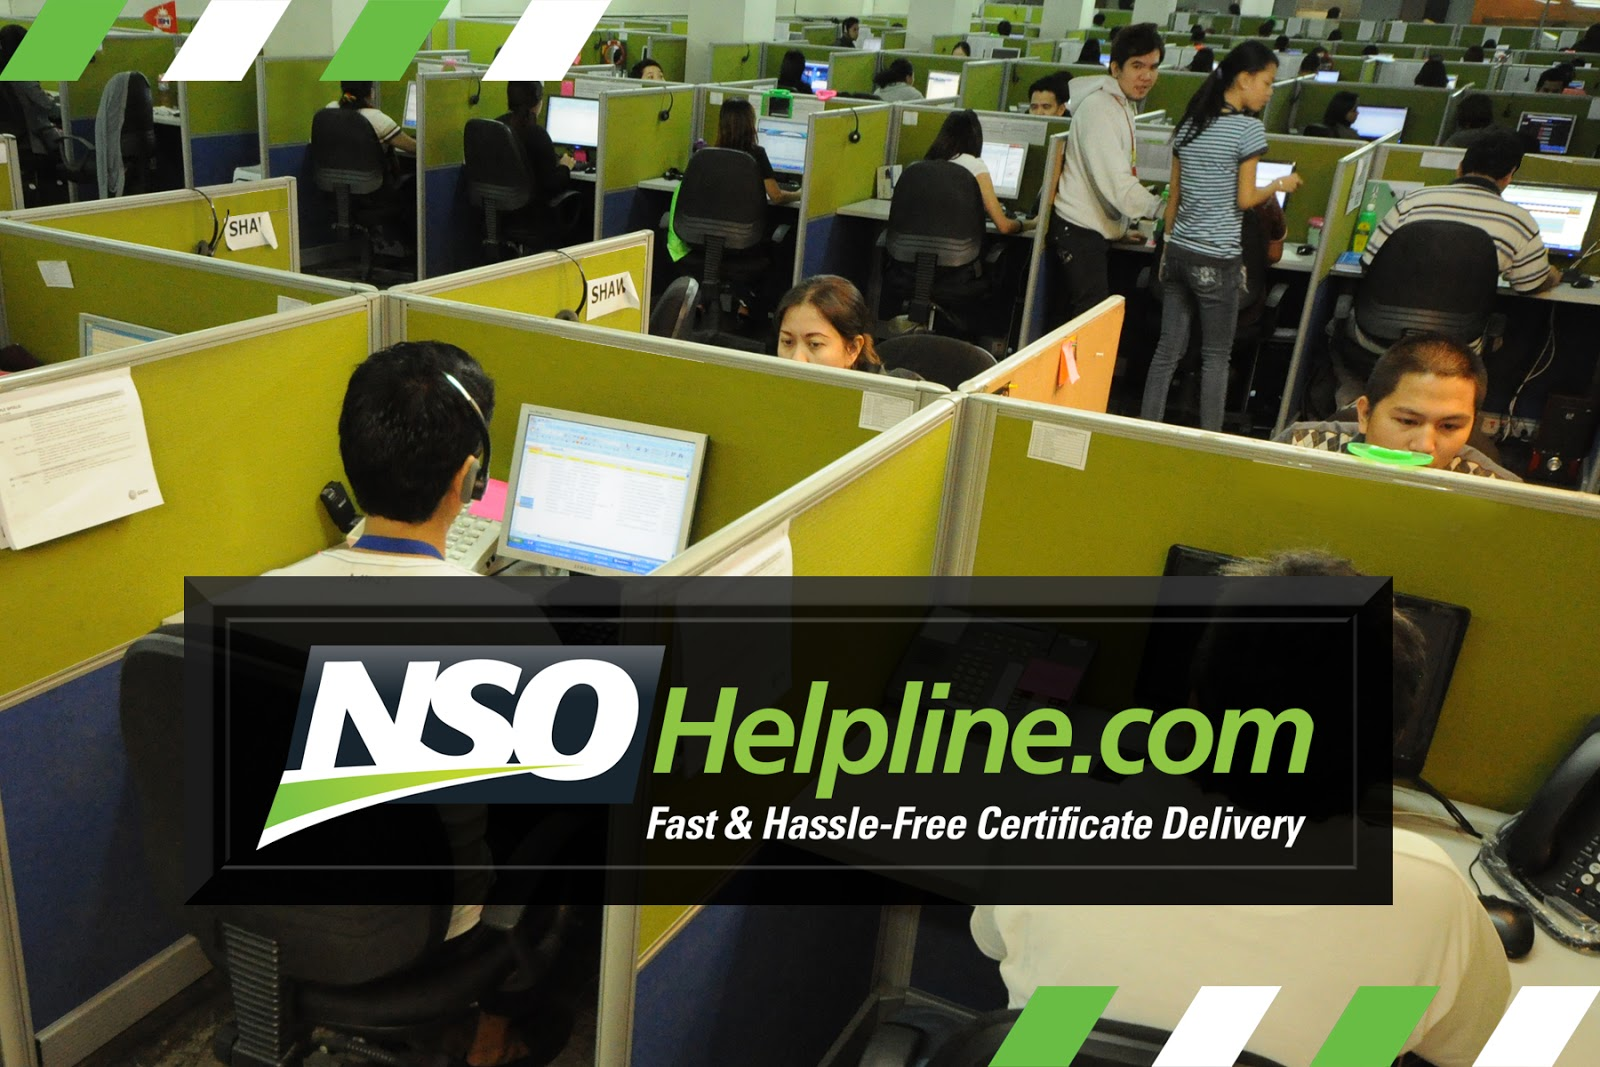 Fast Hassle Free Certificate Delivery From Nsohelpline